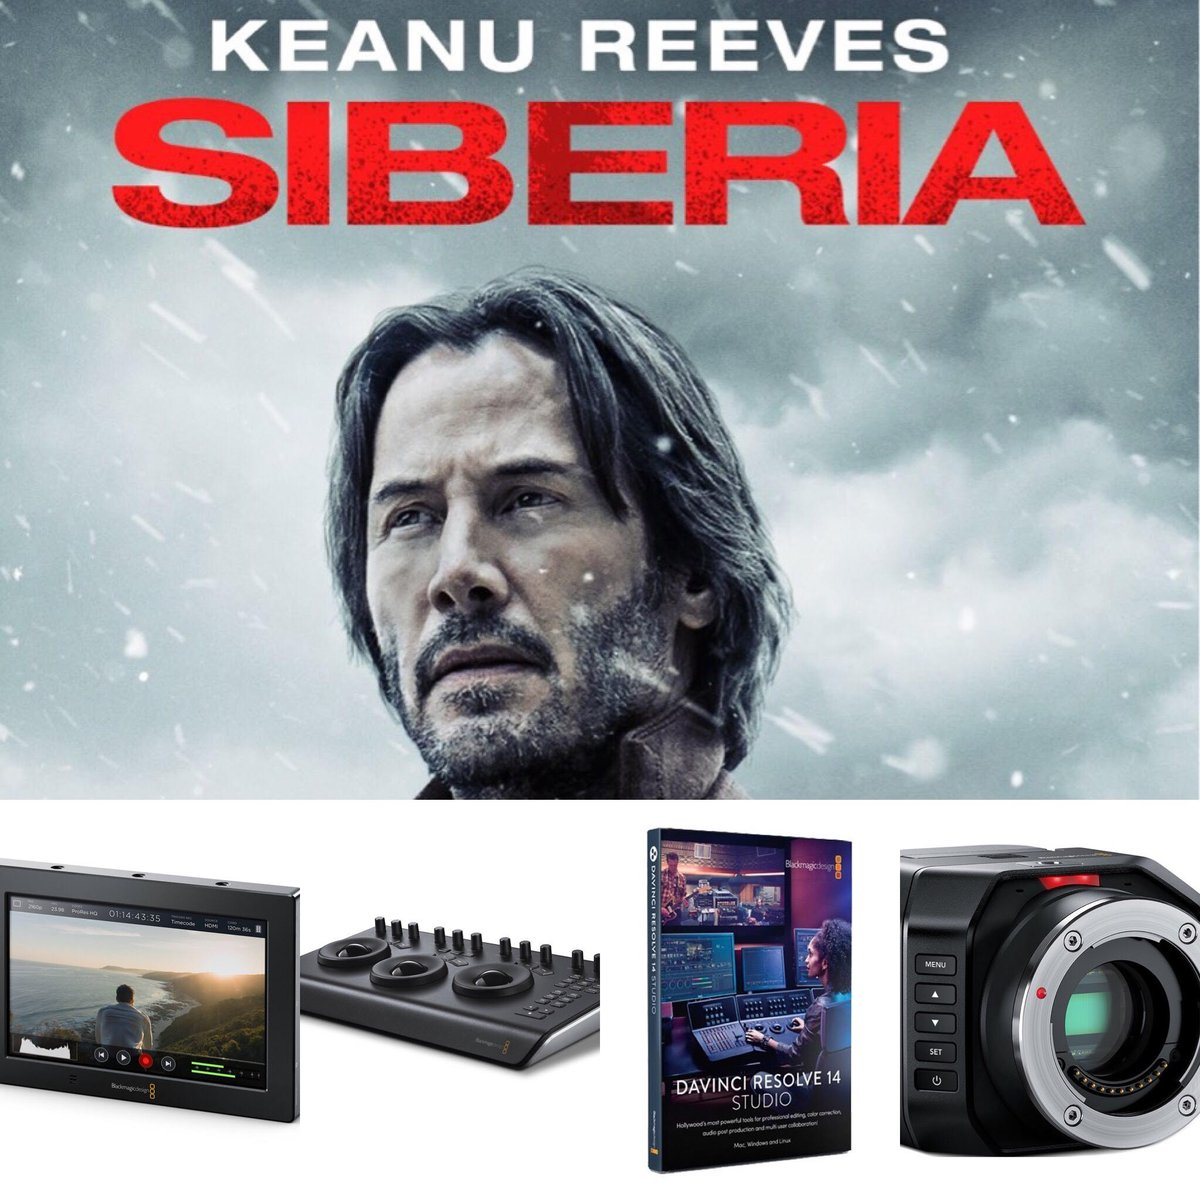 1sourcevideo On Twitter Siberia Dp Eric Koretz Used A Micro Studio Camera 4k With A Video Assist 4k As Well As Davinci Resolve And A Davinci Resolve Micro Panel For Testing Different